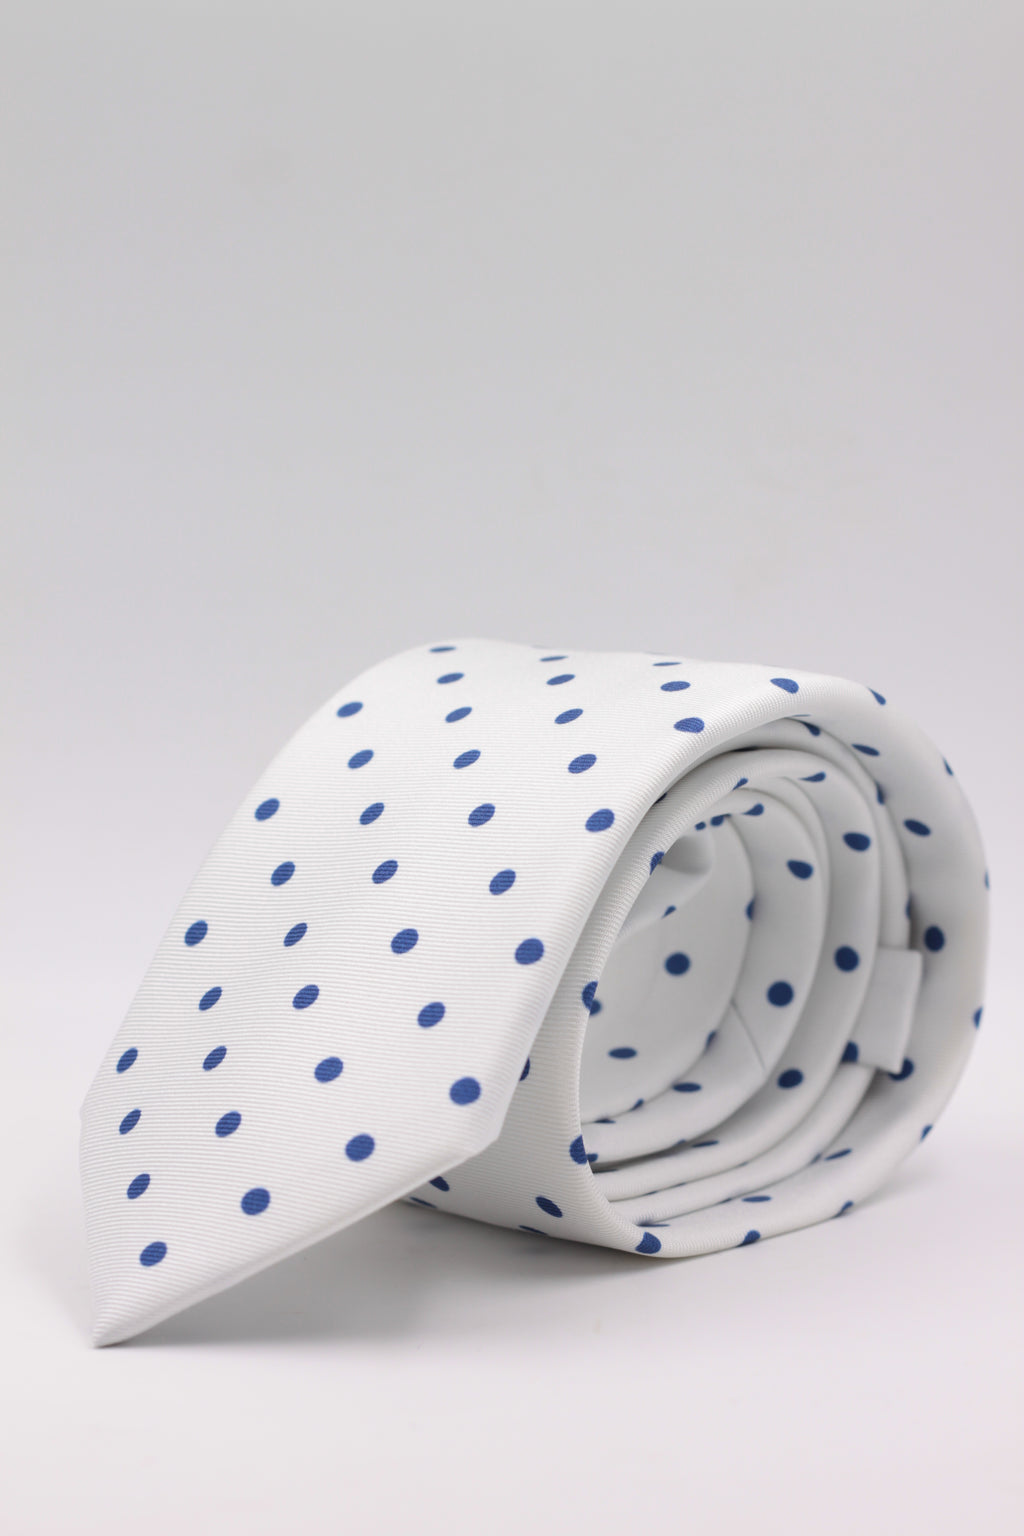 Cruciani & Bella 100% Printed Silk Italian Fabric Self Tipped White and Blue Dot Tie Handmade in Rome 8 cm X 150 cm